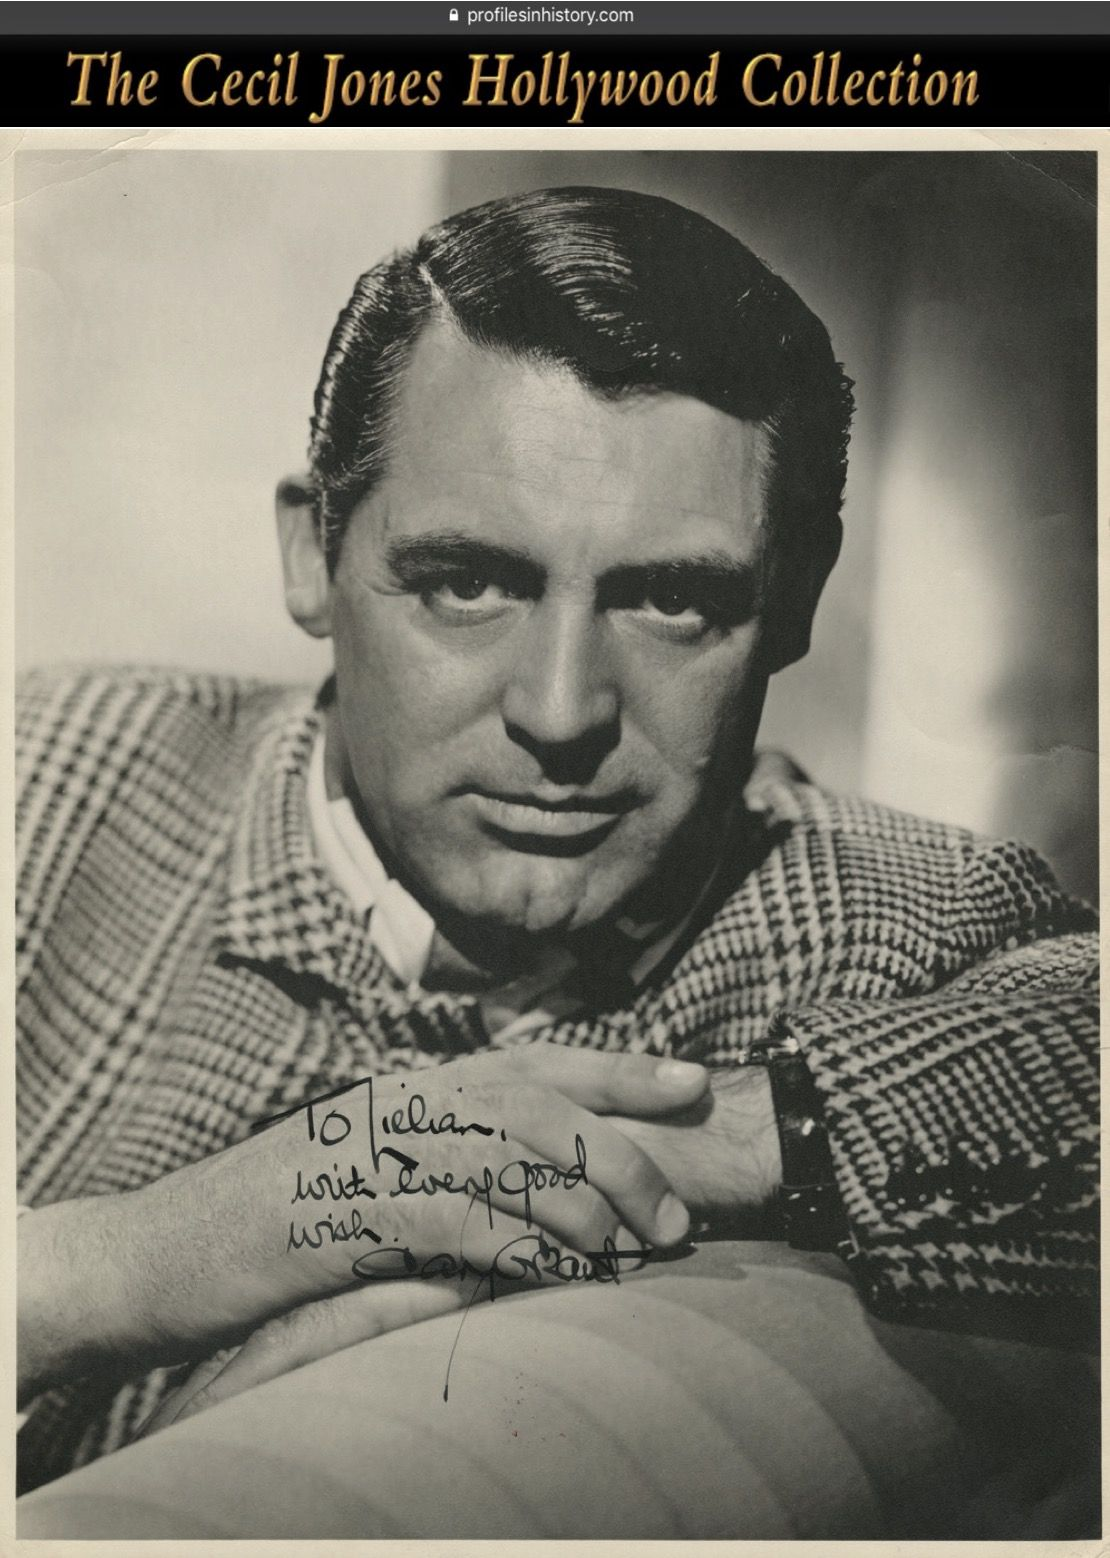 2 year old boy hairstyles cary grant  magnificent signed oversize photograph ca s